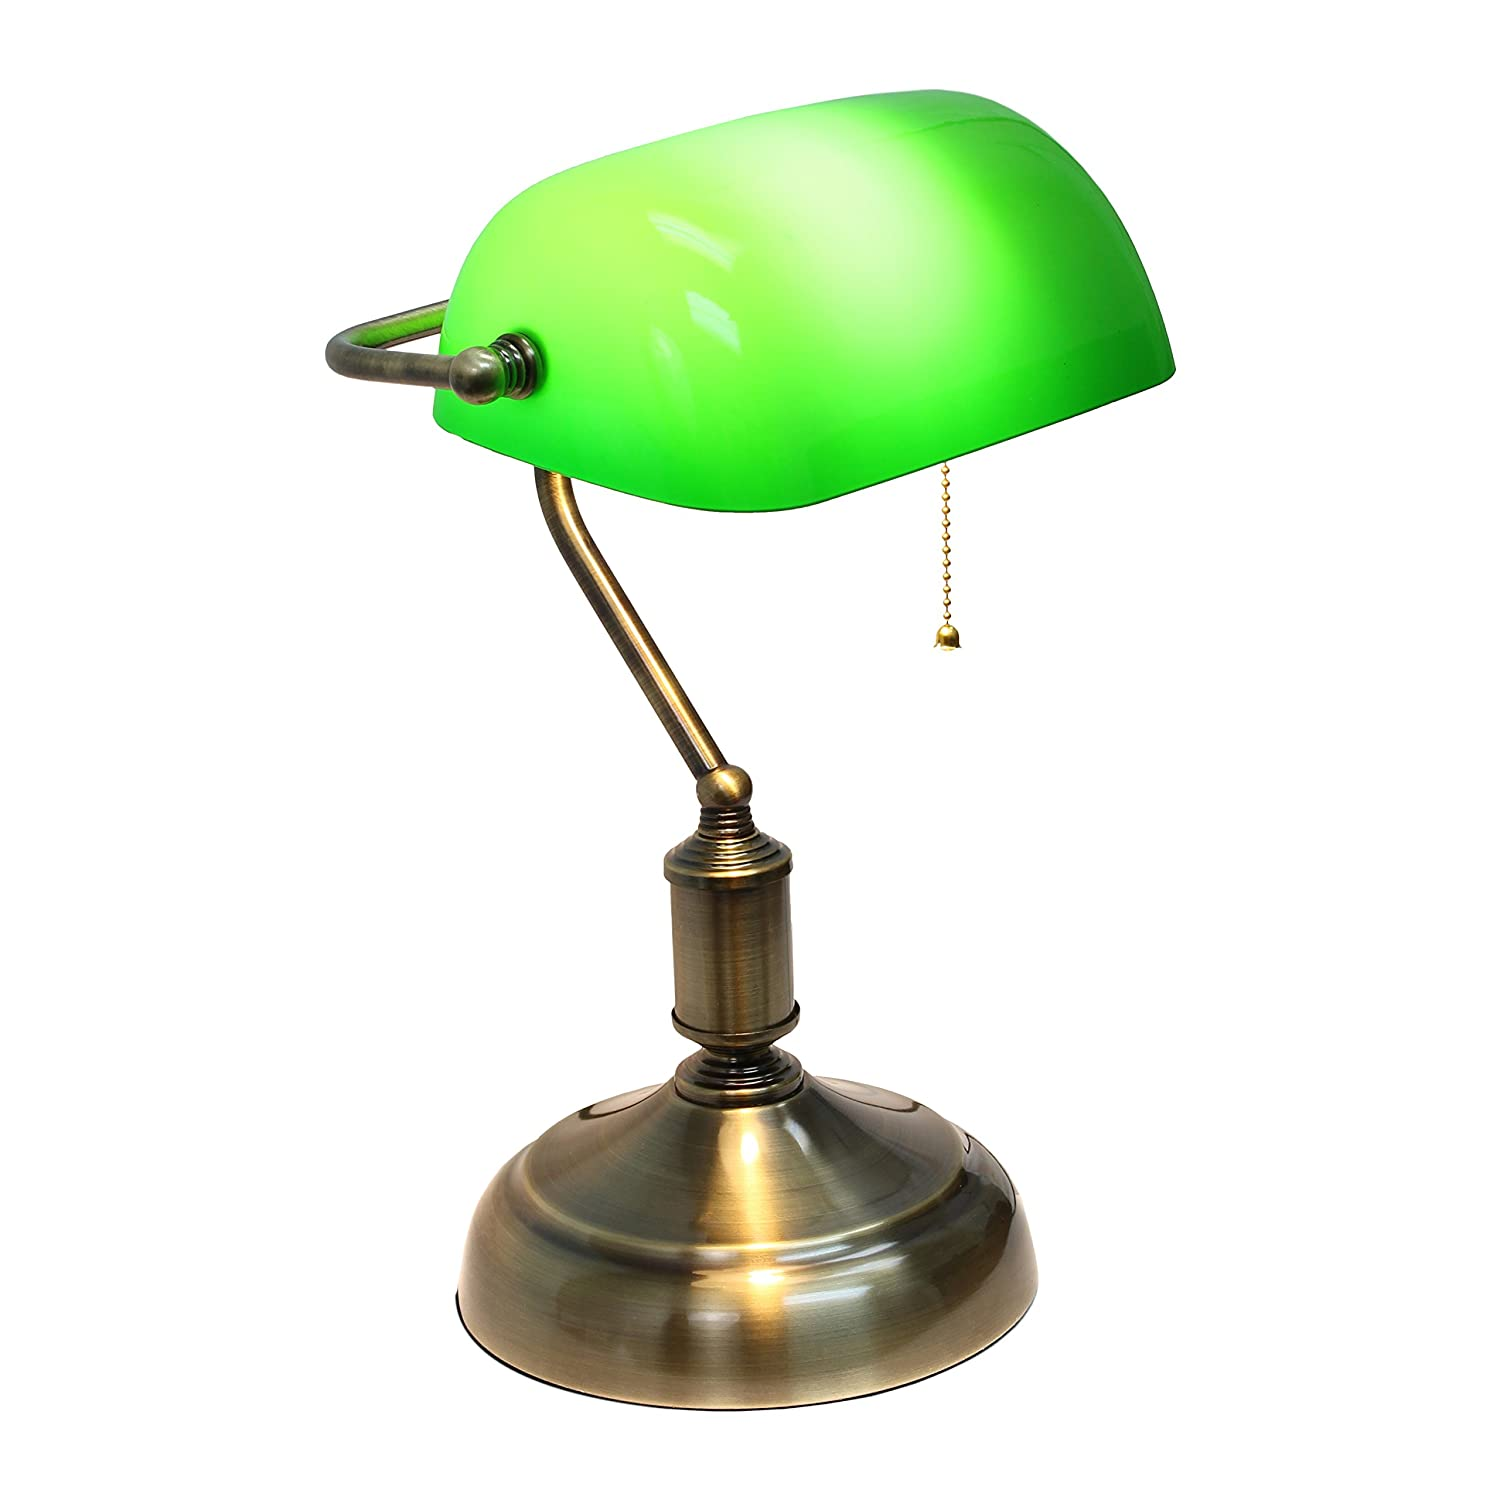 Simple Designs LT3216-GRN Executive Banker's Glass Shade Desk Lamp, Antique Nickel/Green